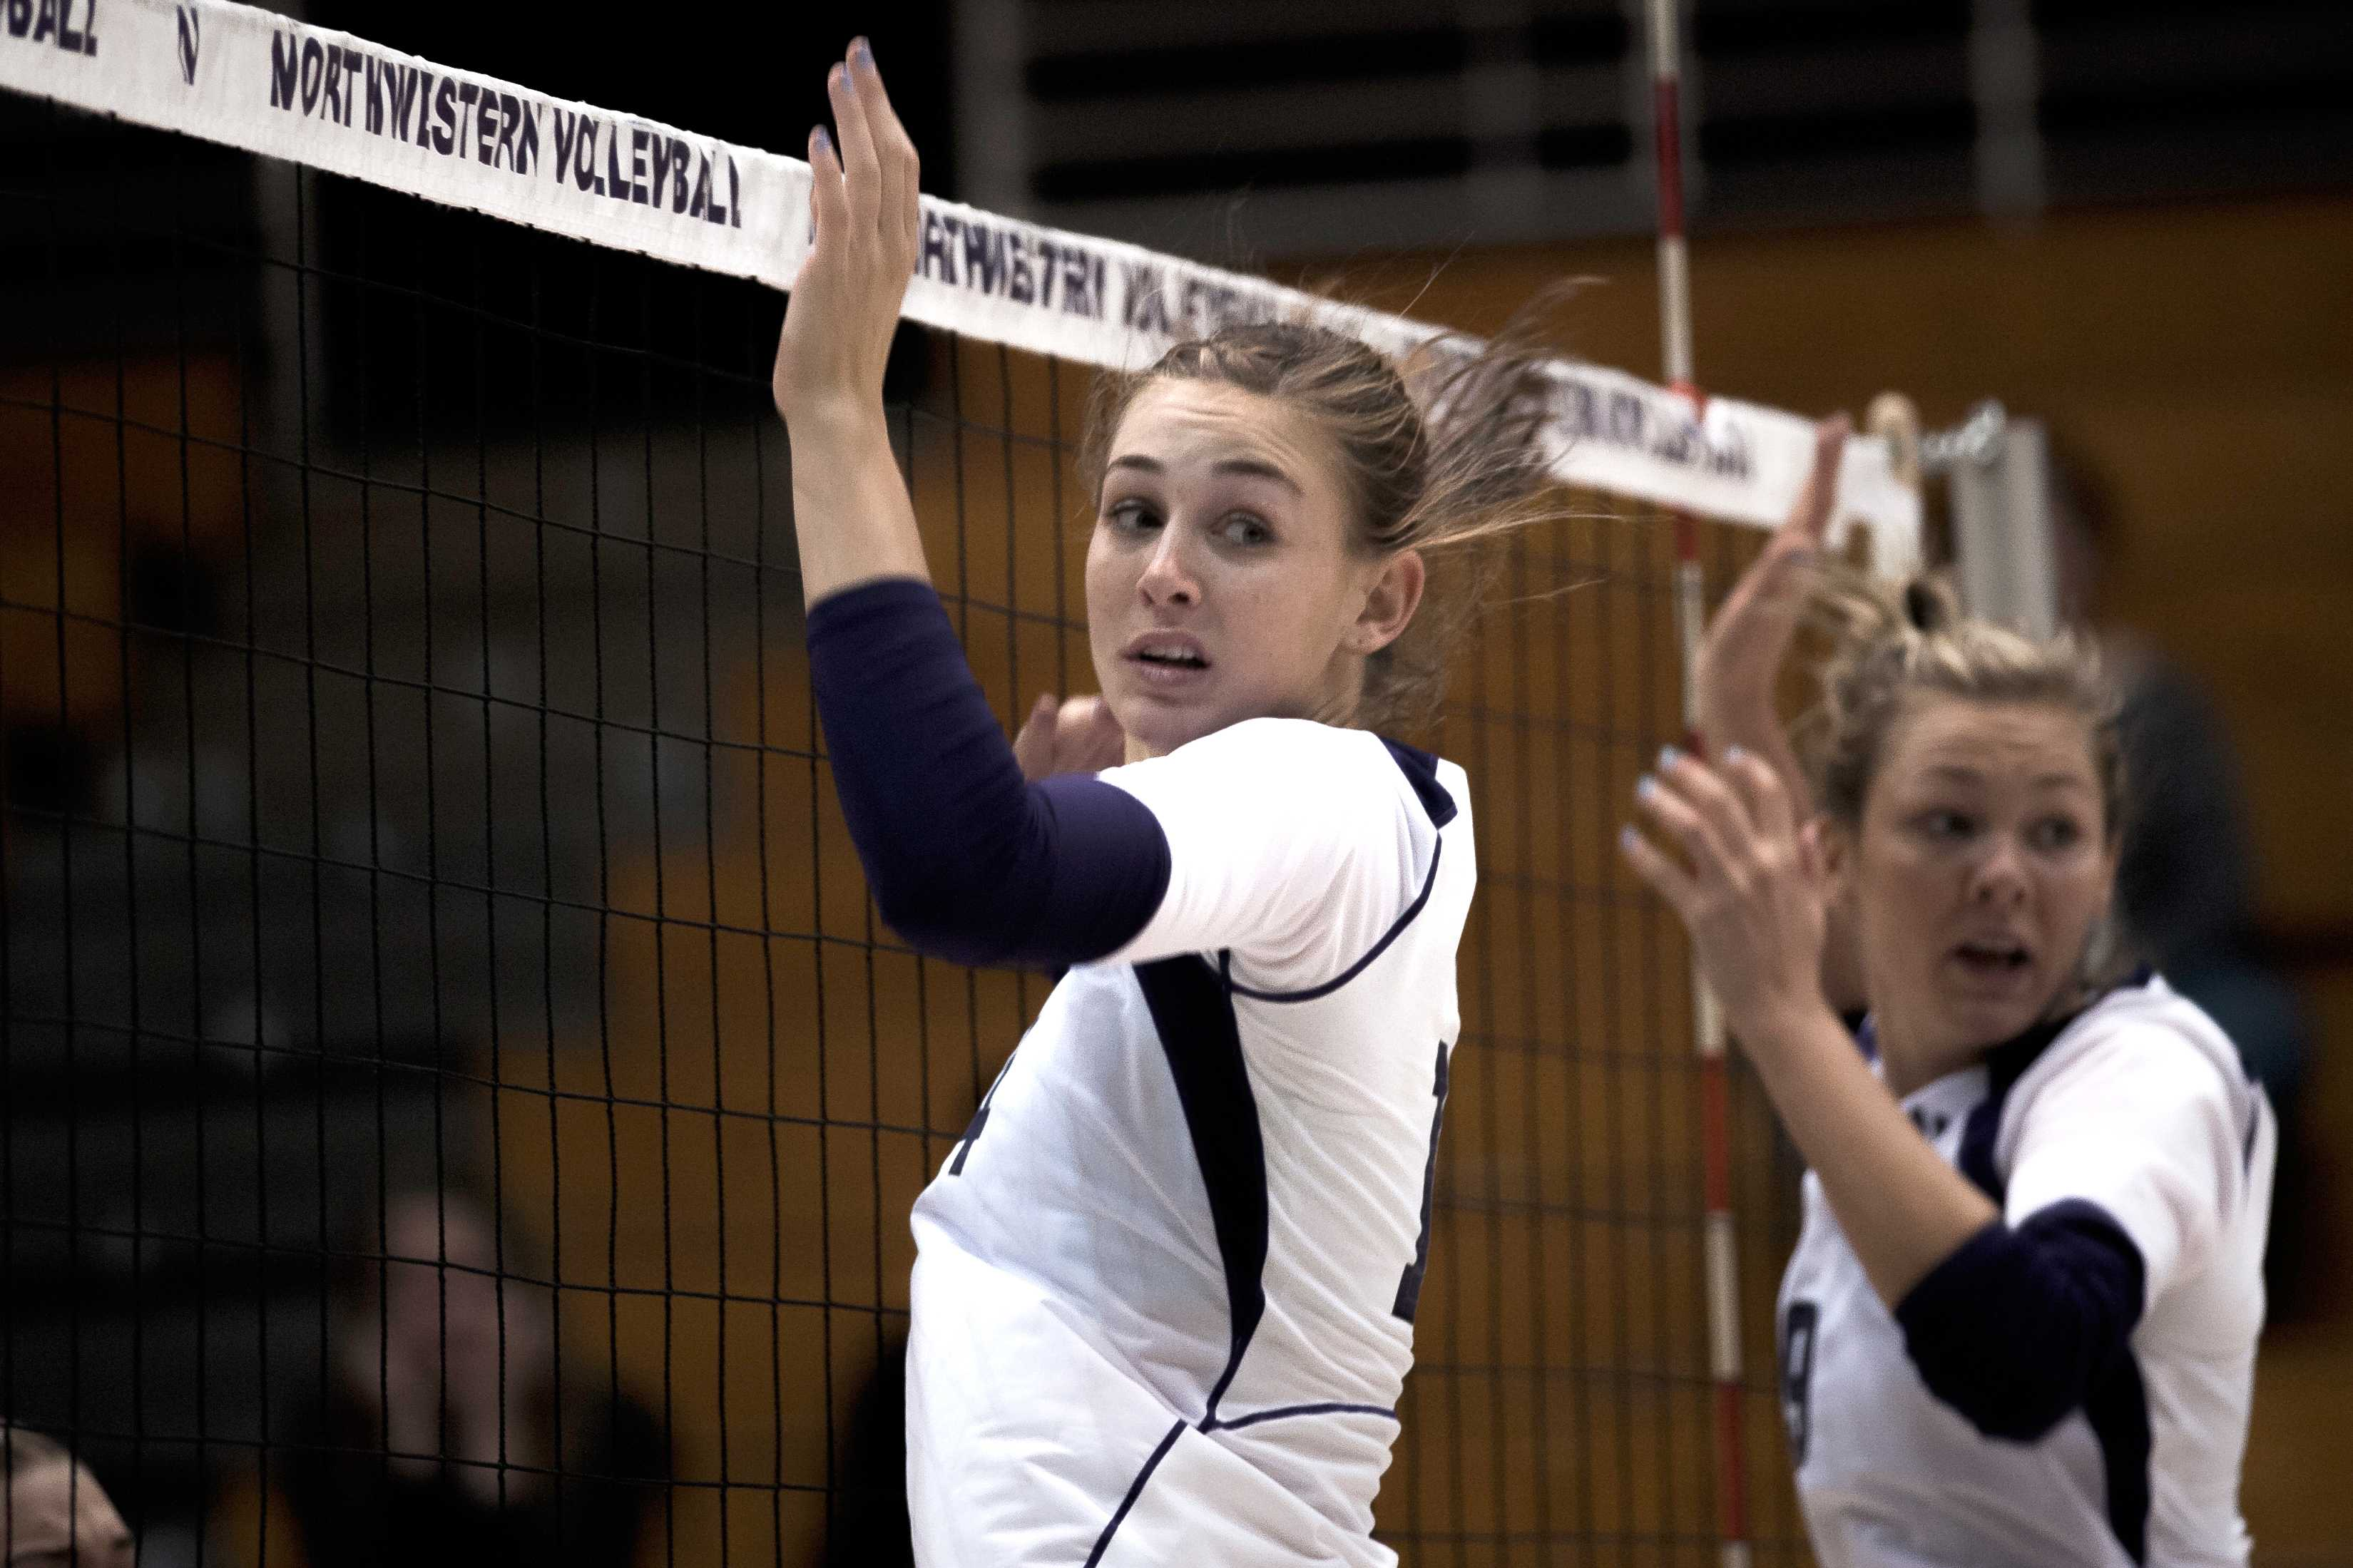 Northwestern middle blocker Katie Dutchman (center) and safety Madalyn Shalter (right) react as a ball sails past them in the final set of their Sept. 23 defeat by Minnesota.